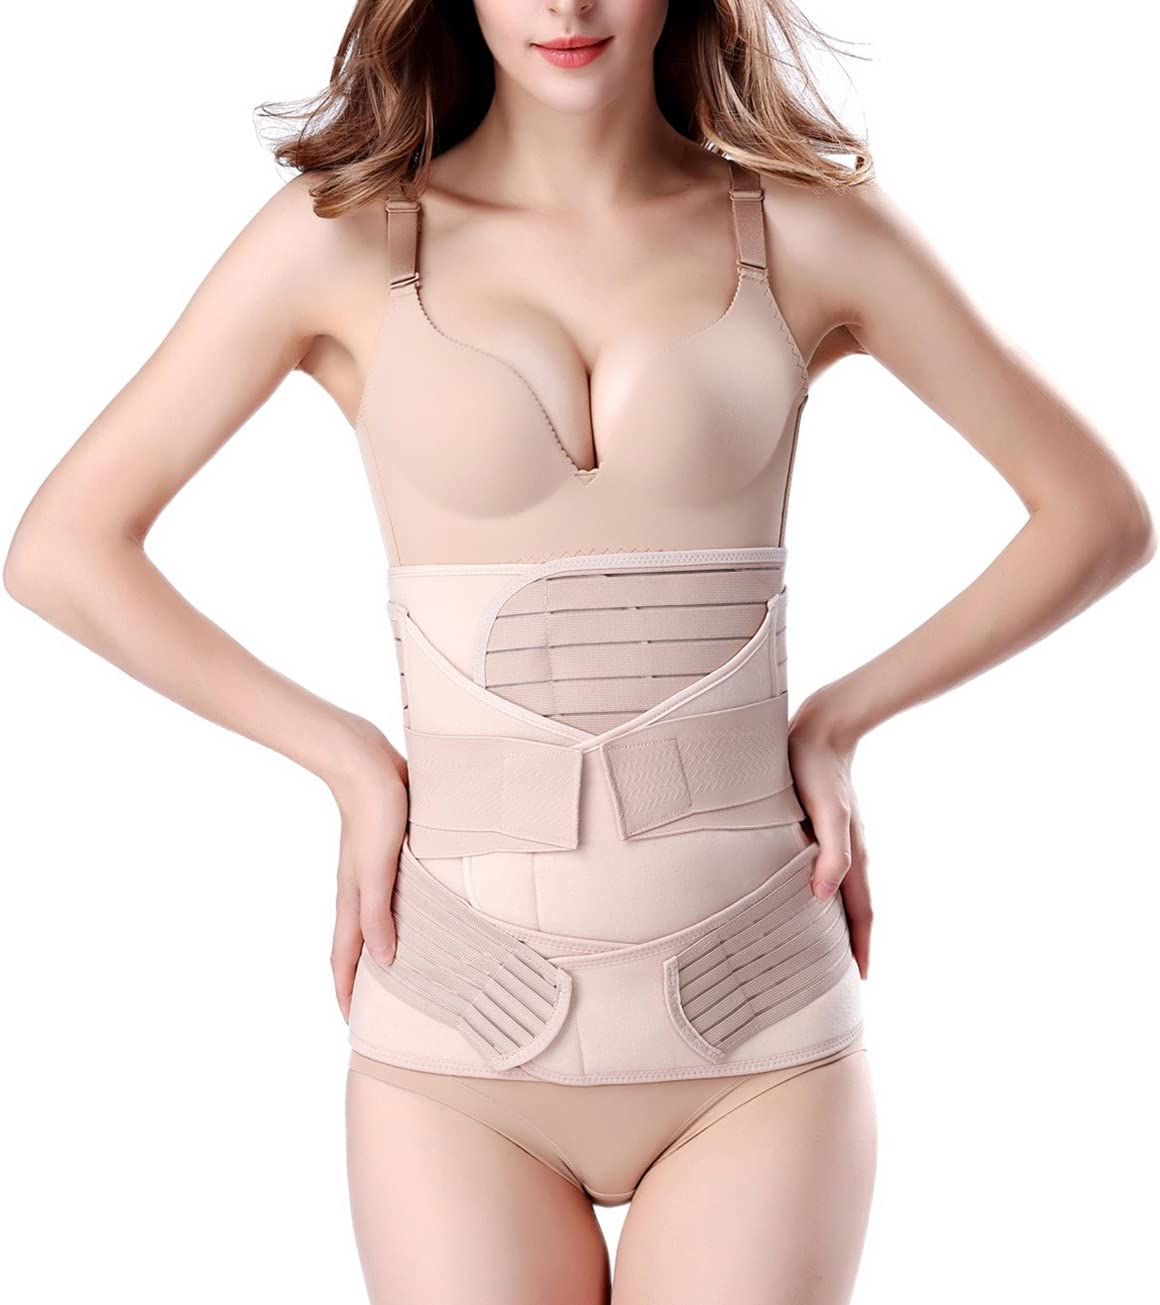 3 in 1 Postpartum Support - Recovery Belly/waist/pelvis Belt Shapewear Slimming Girdle, Beige, One Size